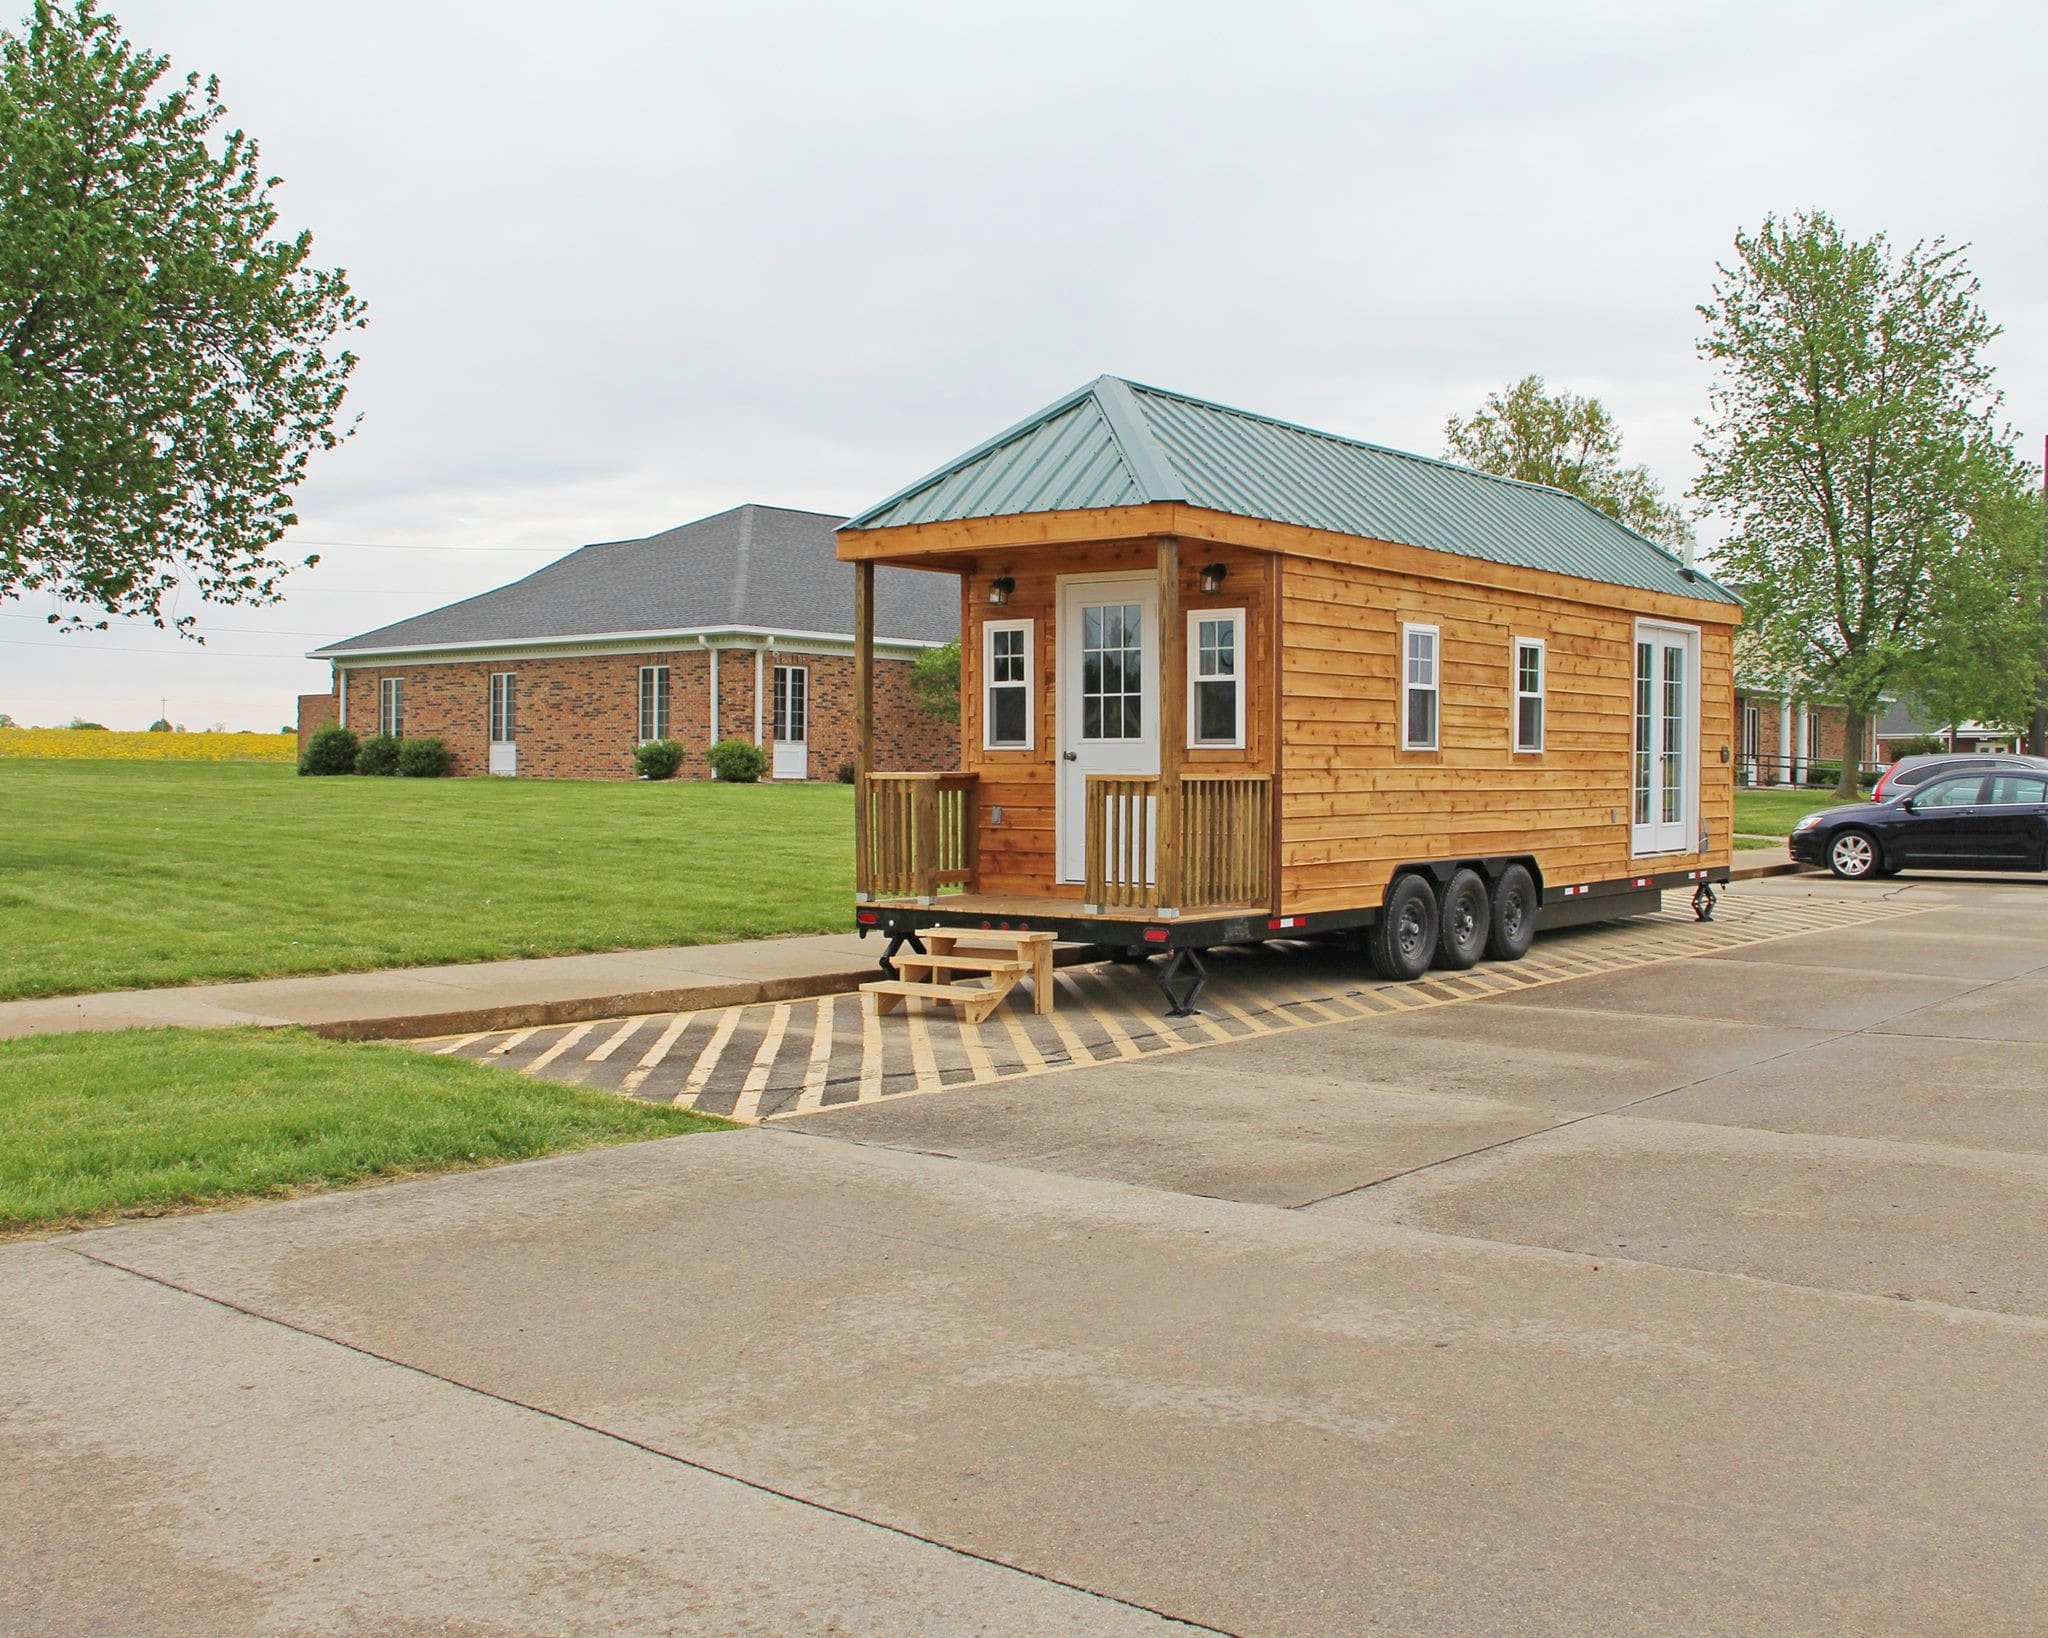 frontier community college construction technology program builds tiny house in southern. Black Bedroom Furniture Sets. Home Design Ideas